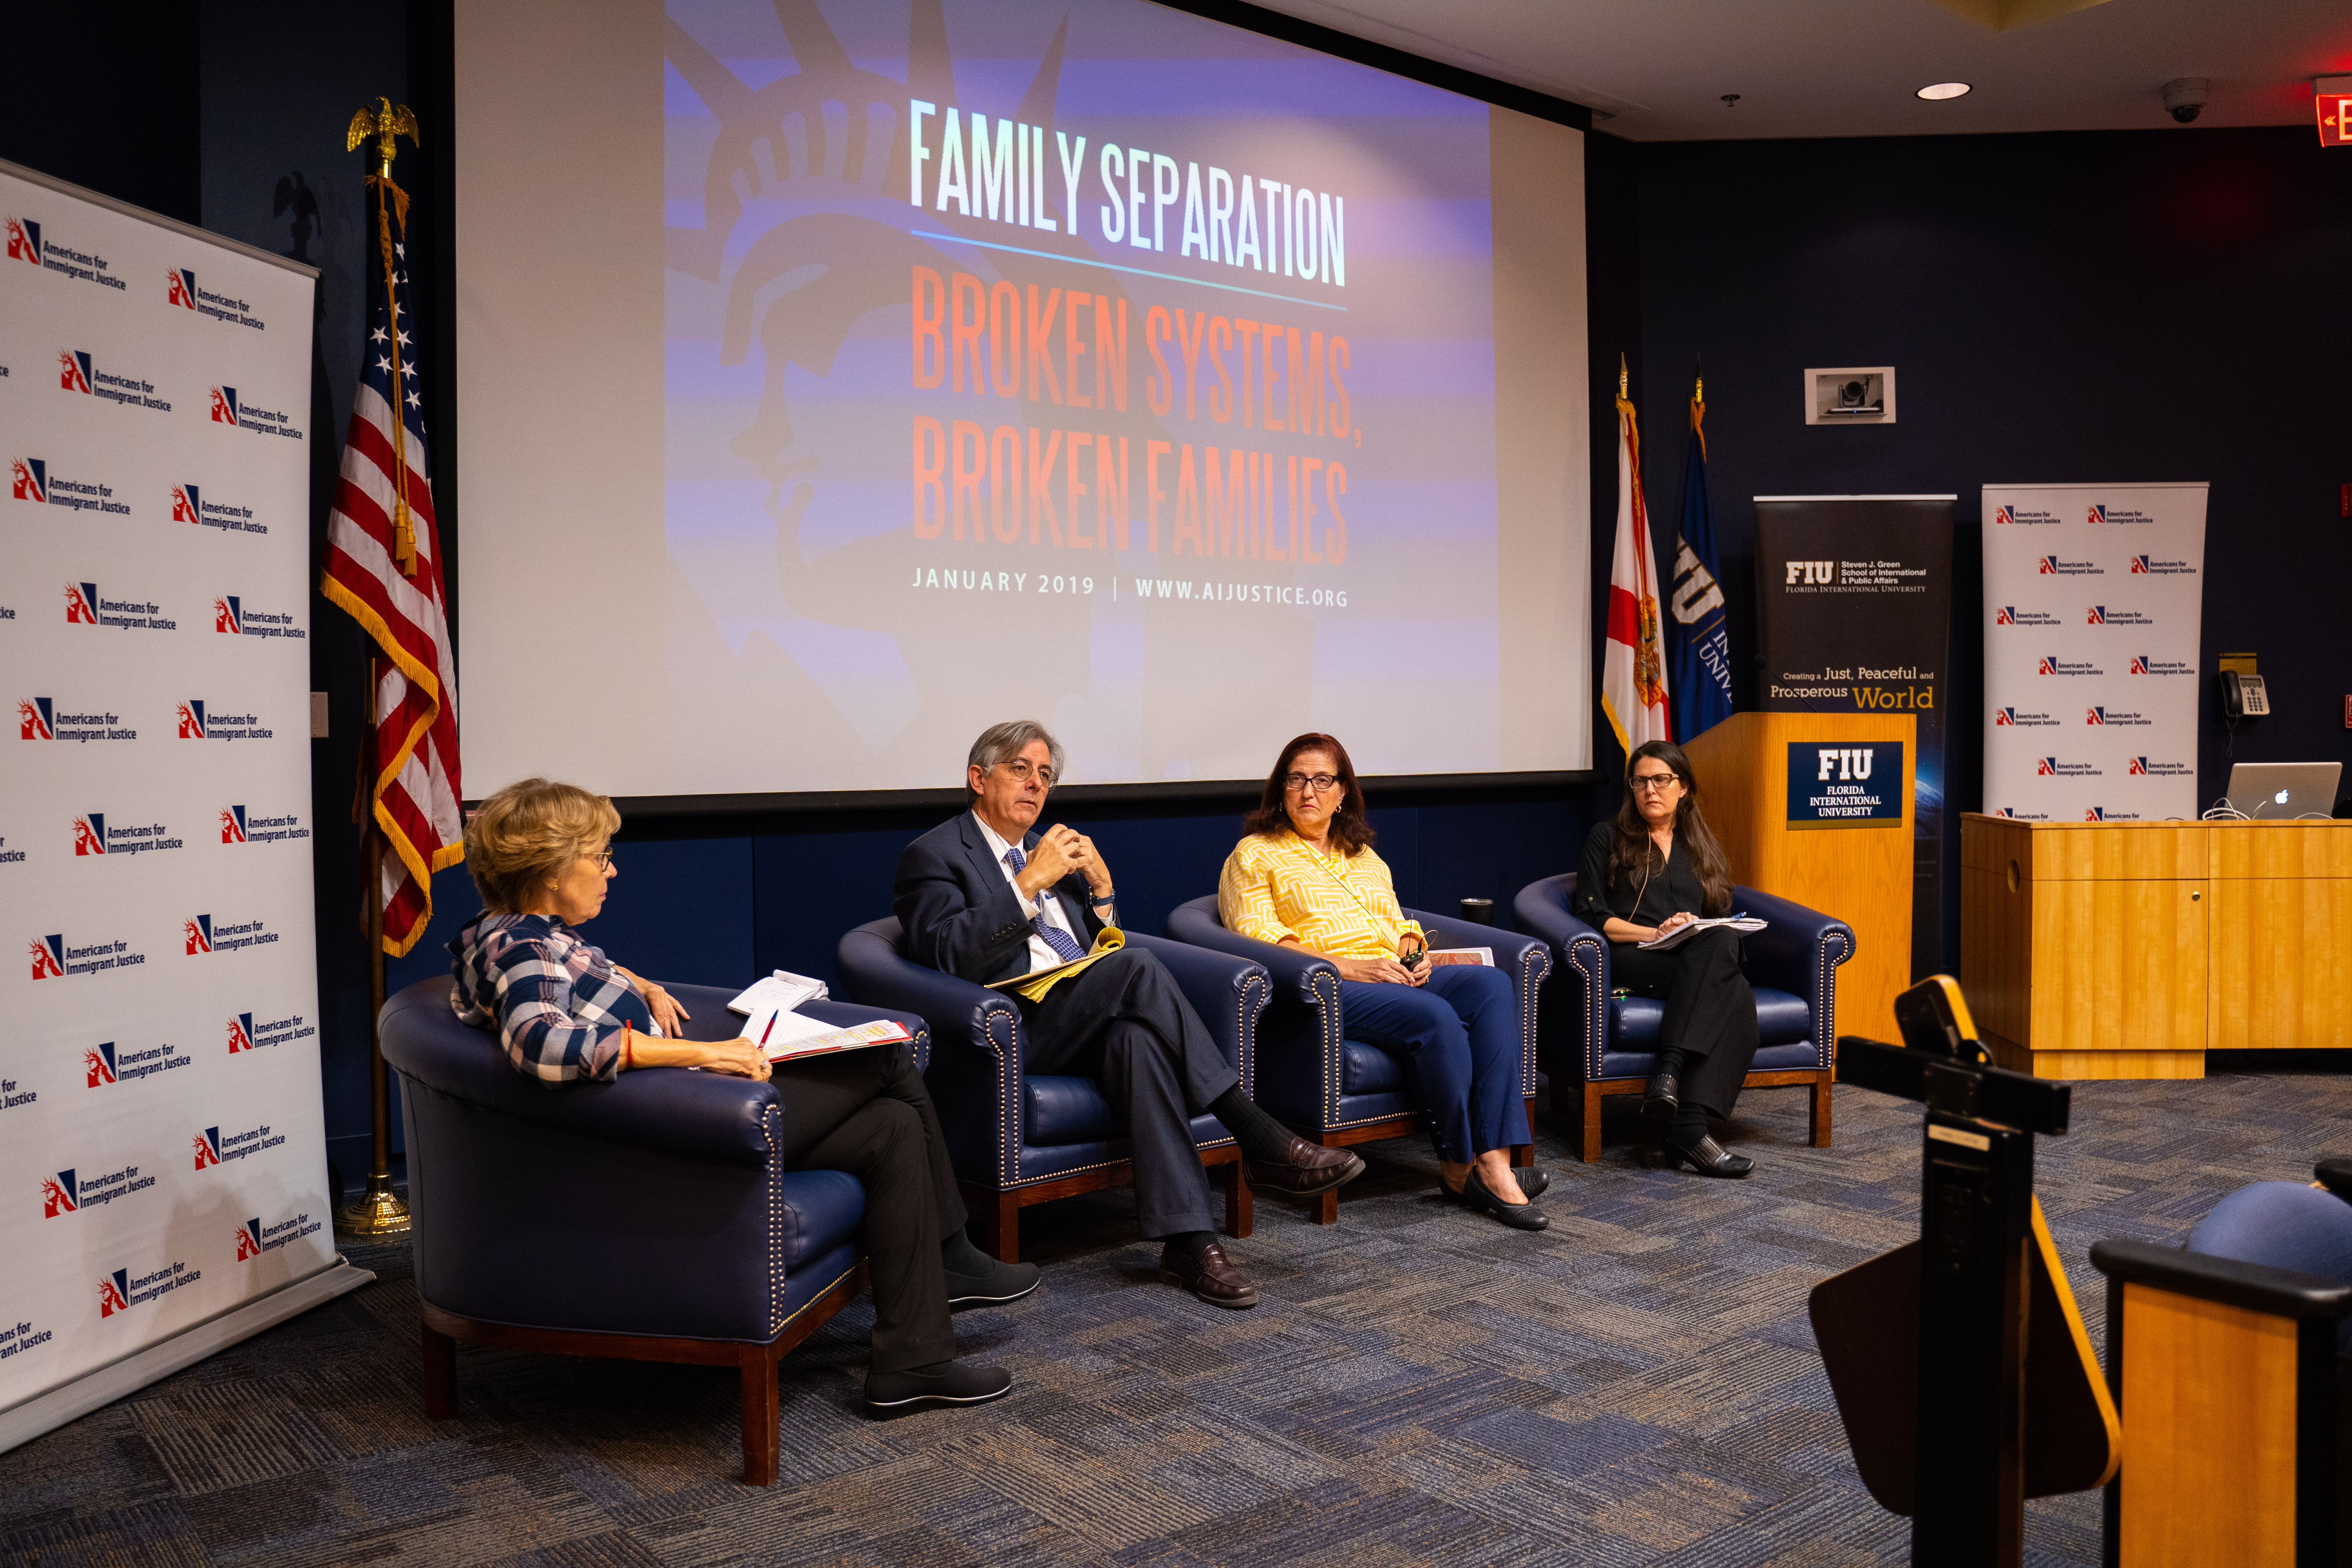 Family Separation Event